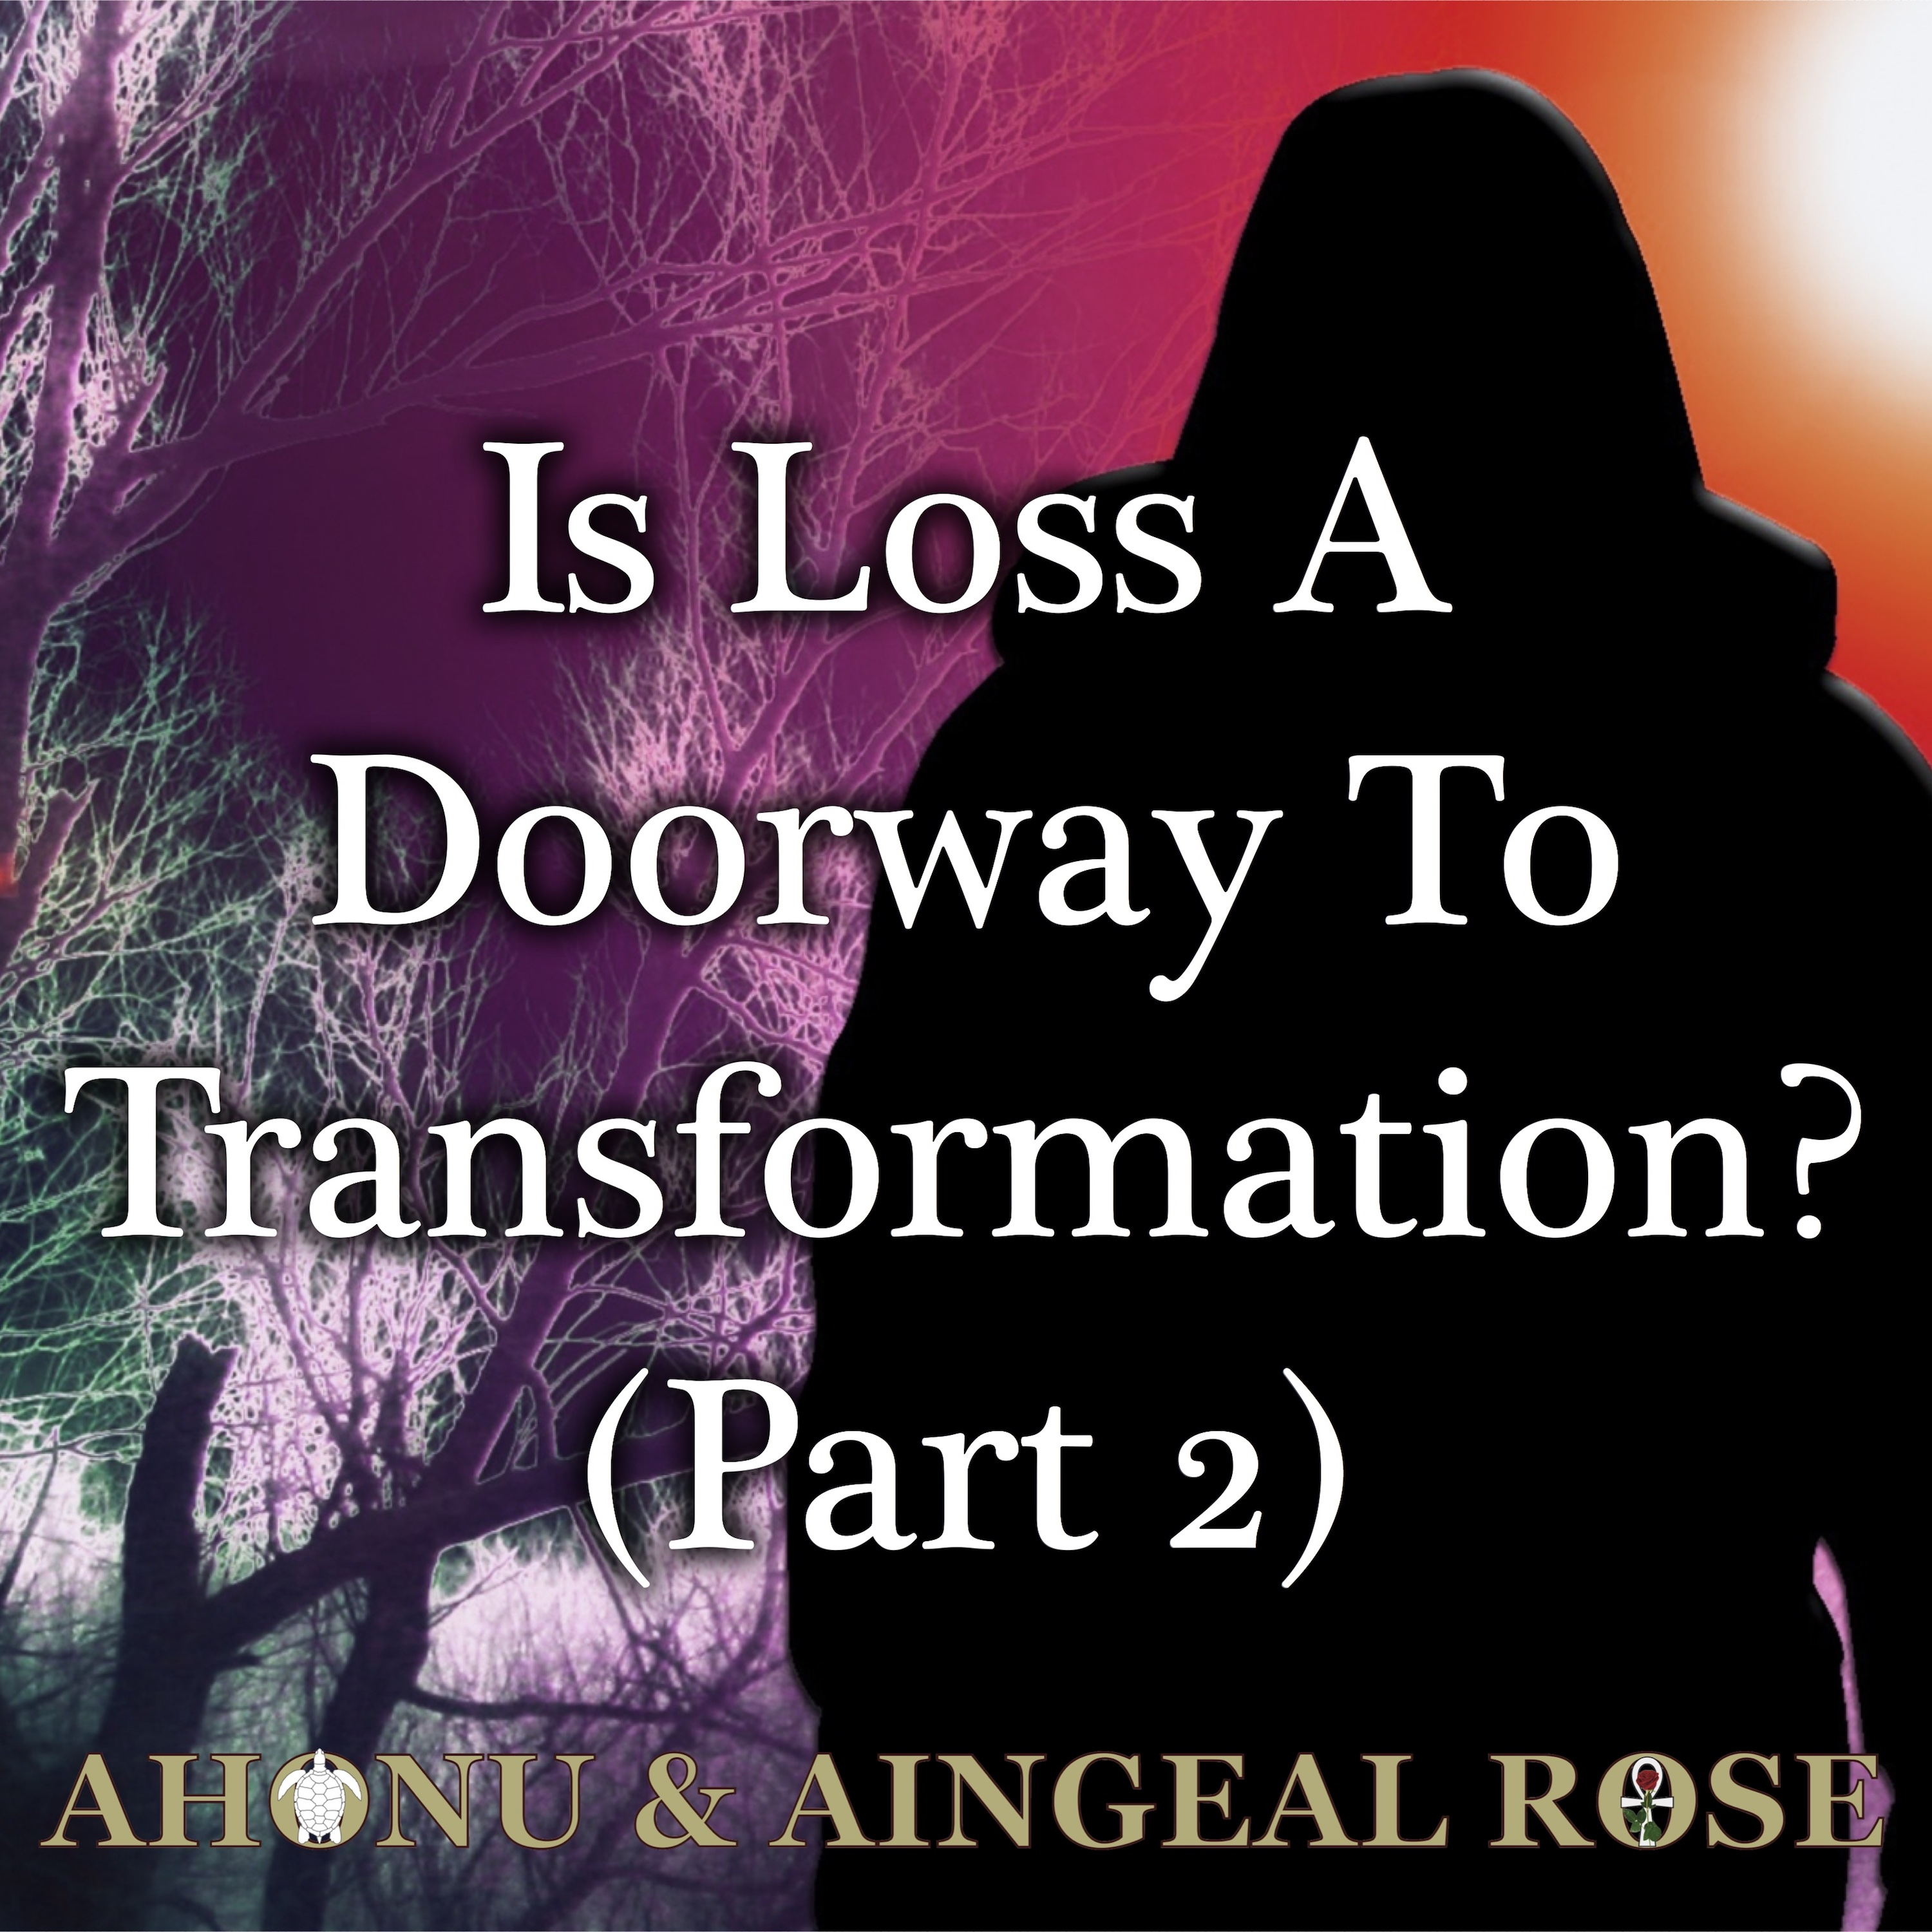 Aingeal Rose & Ahonu ask Is Loss A Doorway To Transformation?